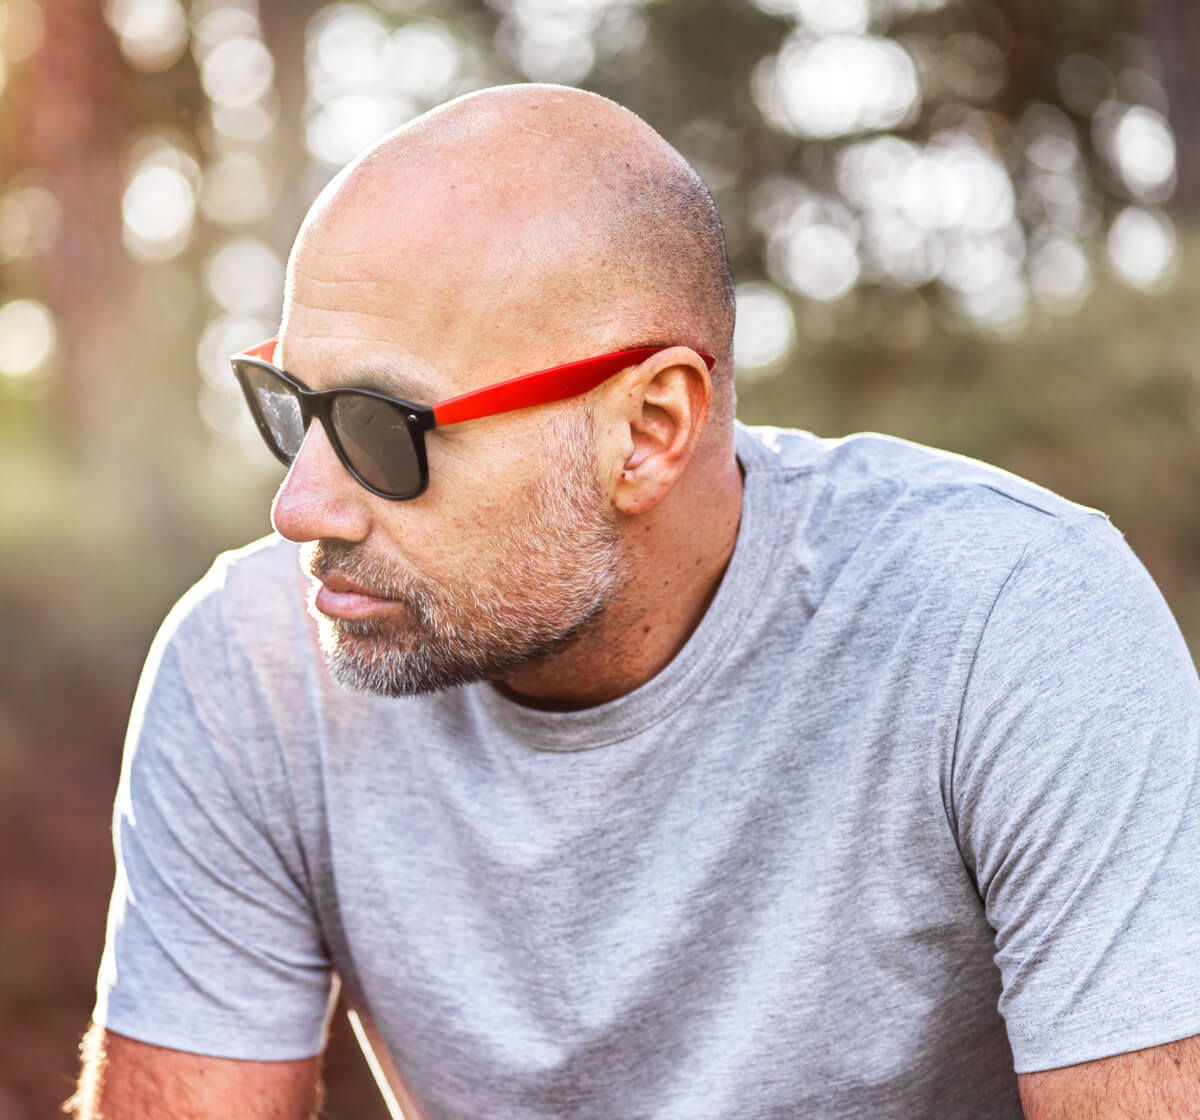 Man with beard outdoors in grey teeshirt wearing sunglasses which have red arms.